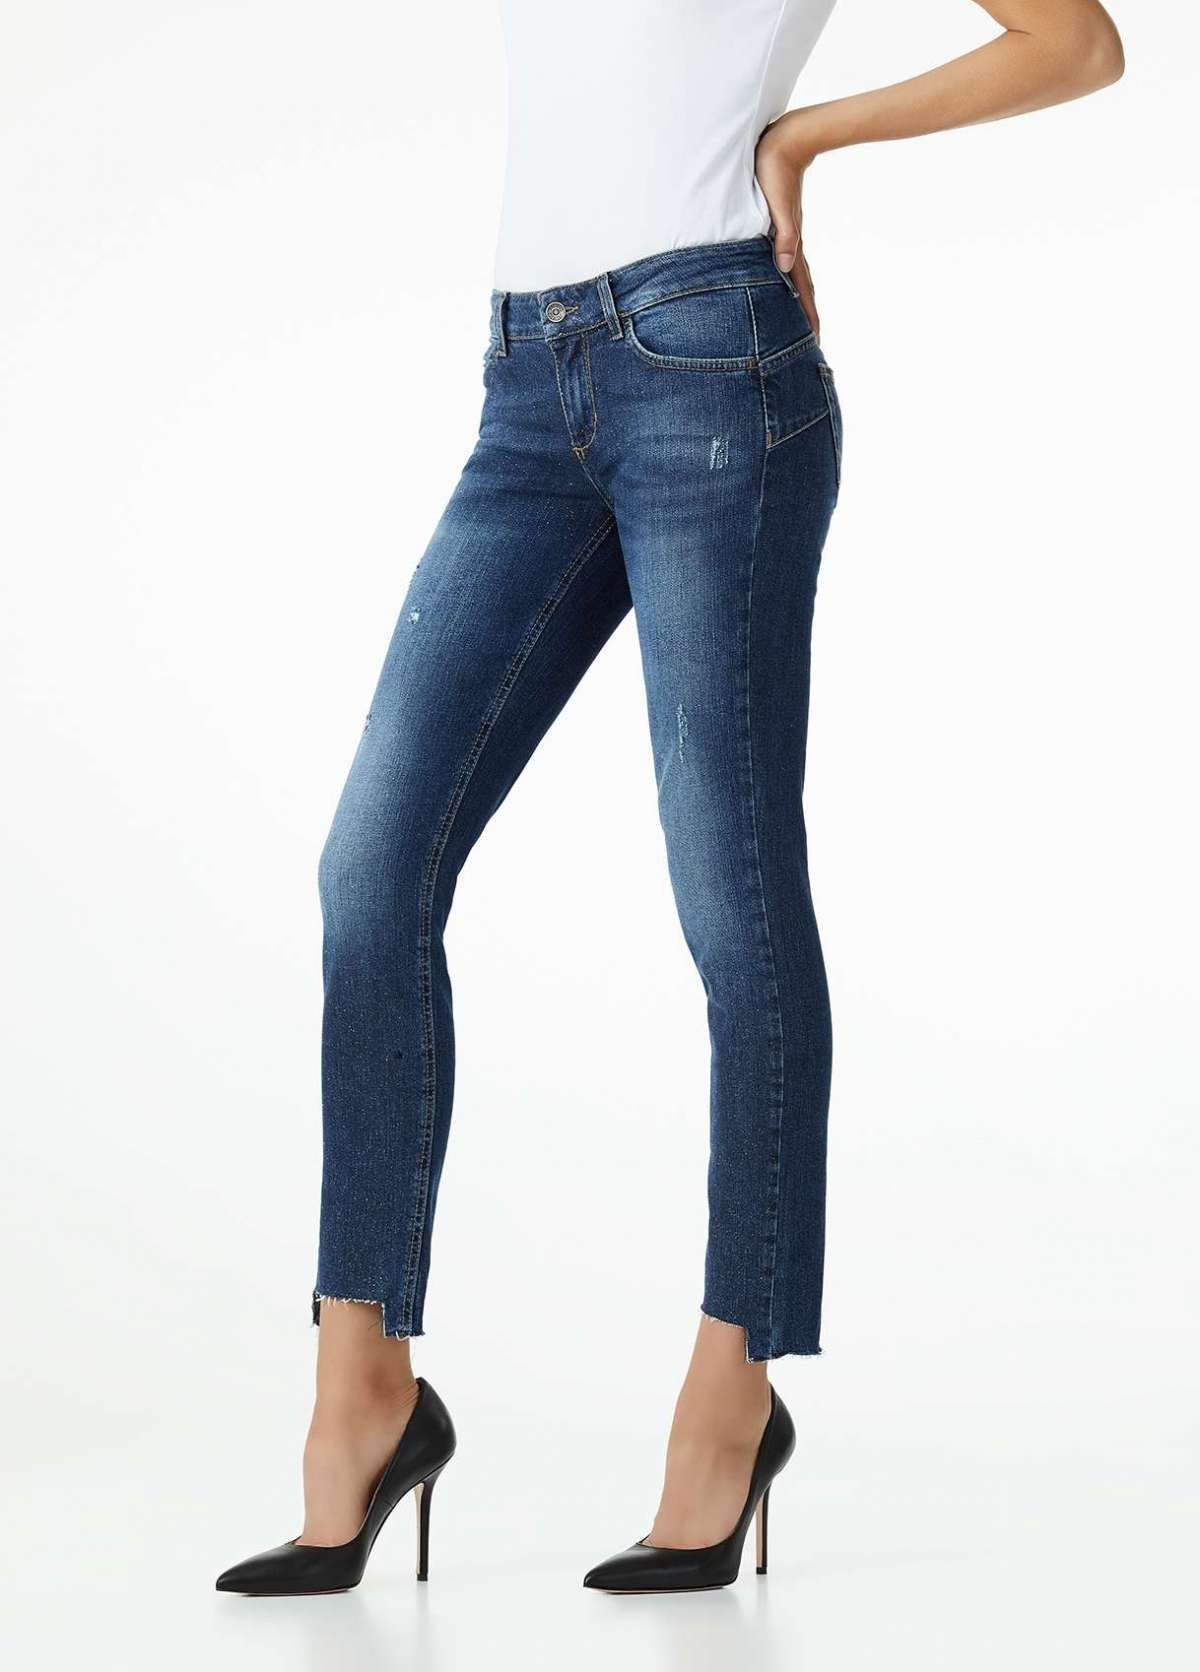 Jeans Tendenze Autunno Inverno 2018 2019 Jeans Push Up Liu Jo A